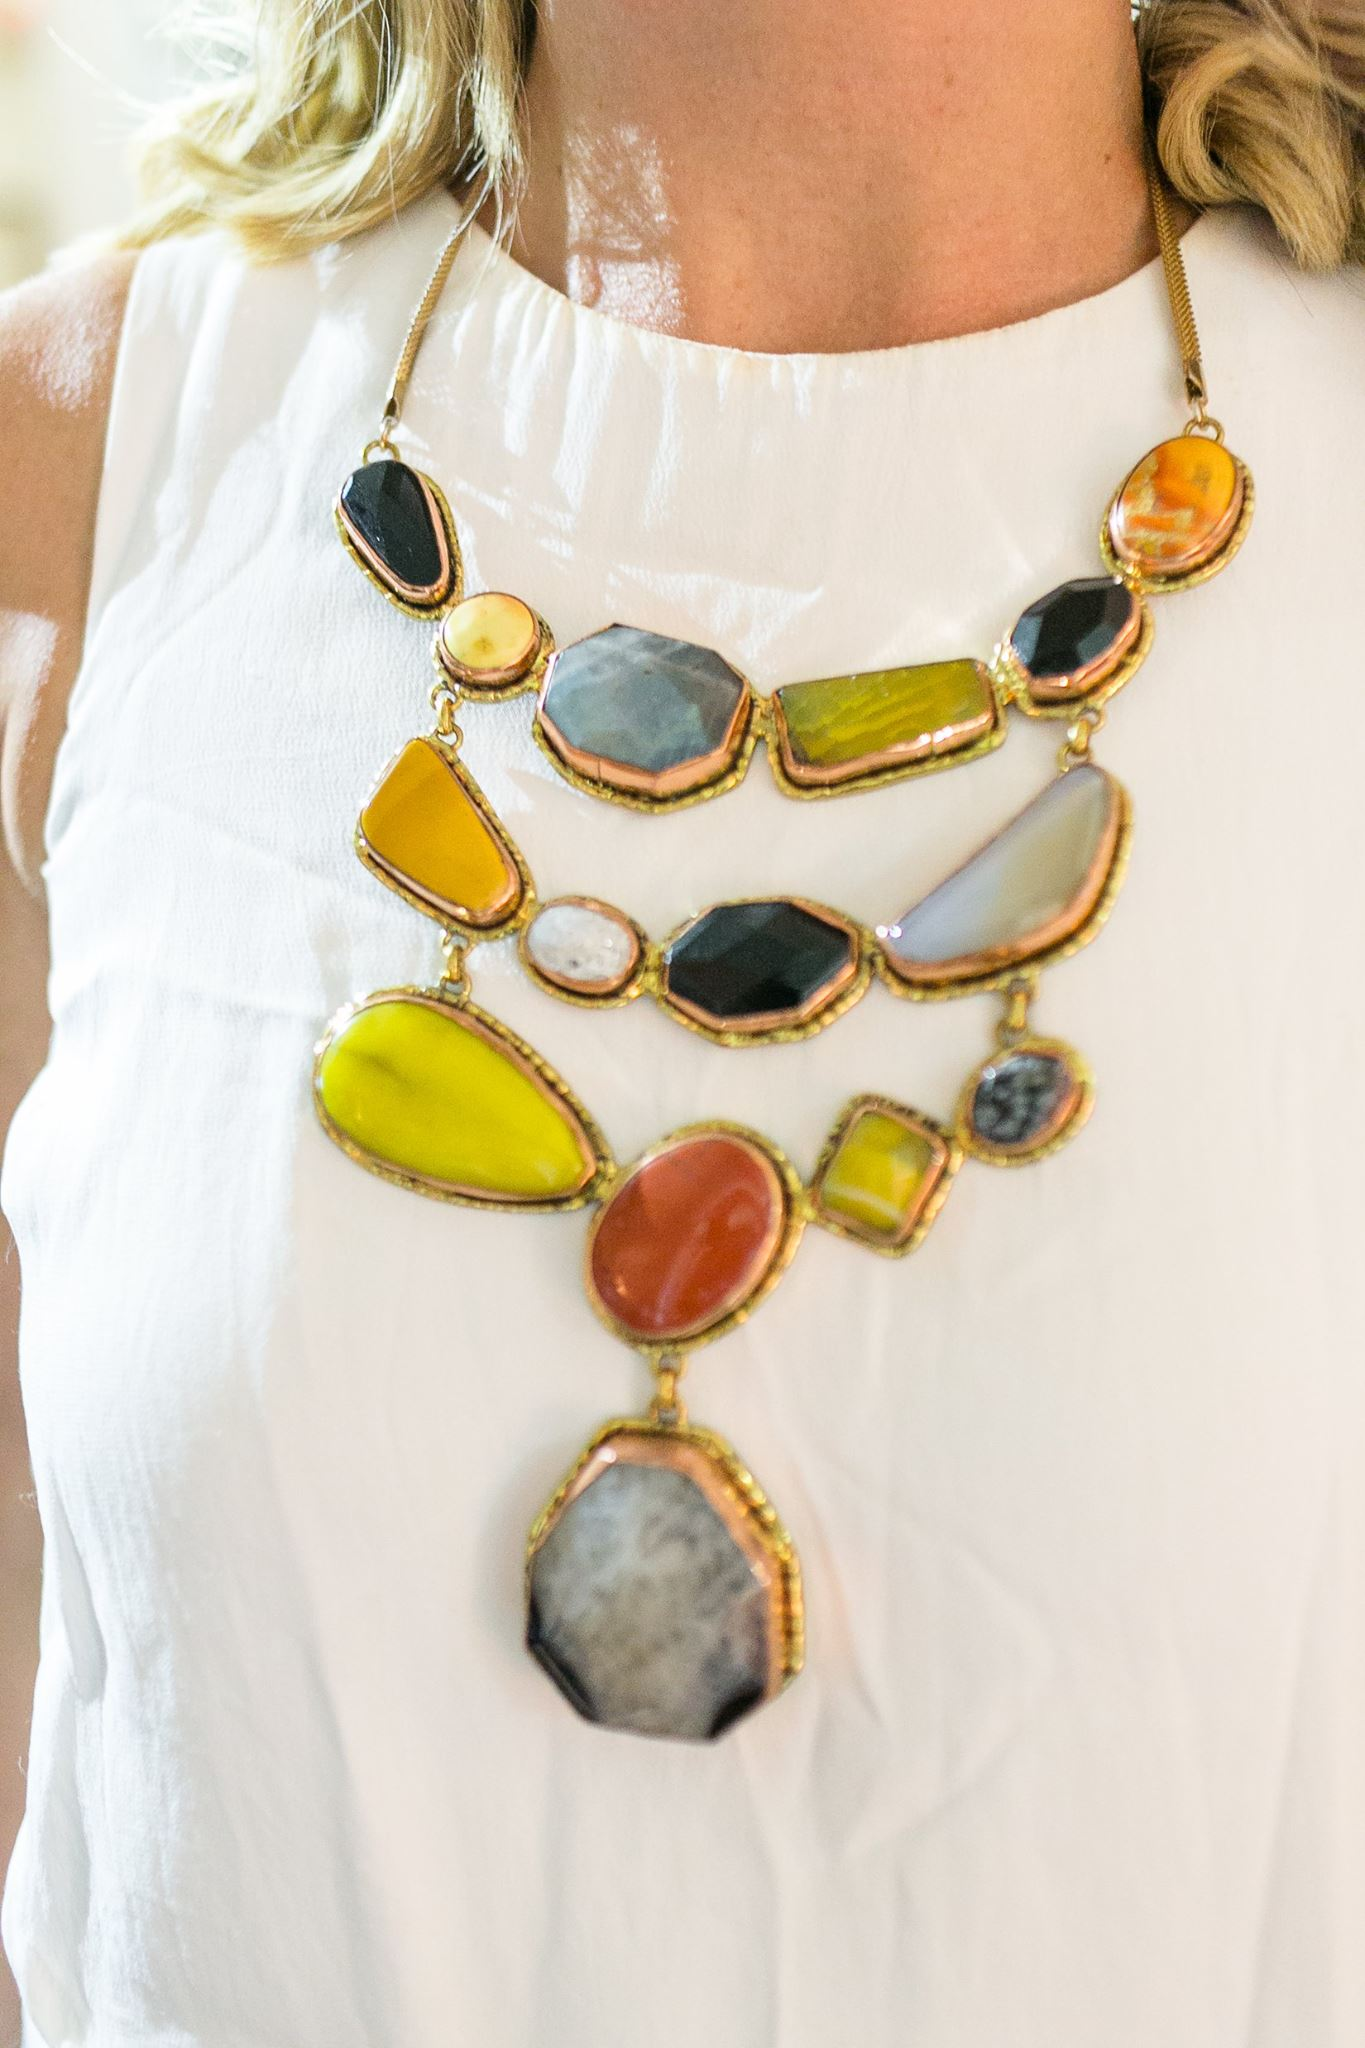 Close up on this remarkable piece of jewellery, worn by jewellery designer and founder of uberkate Kate Sutton